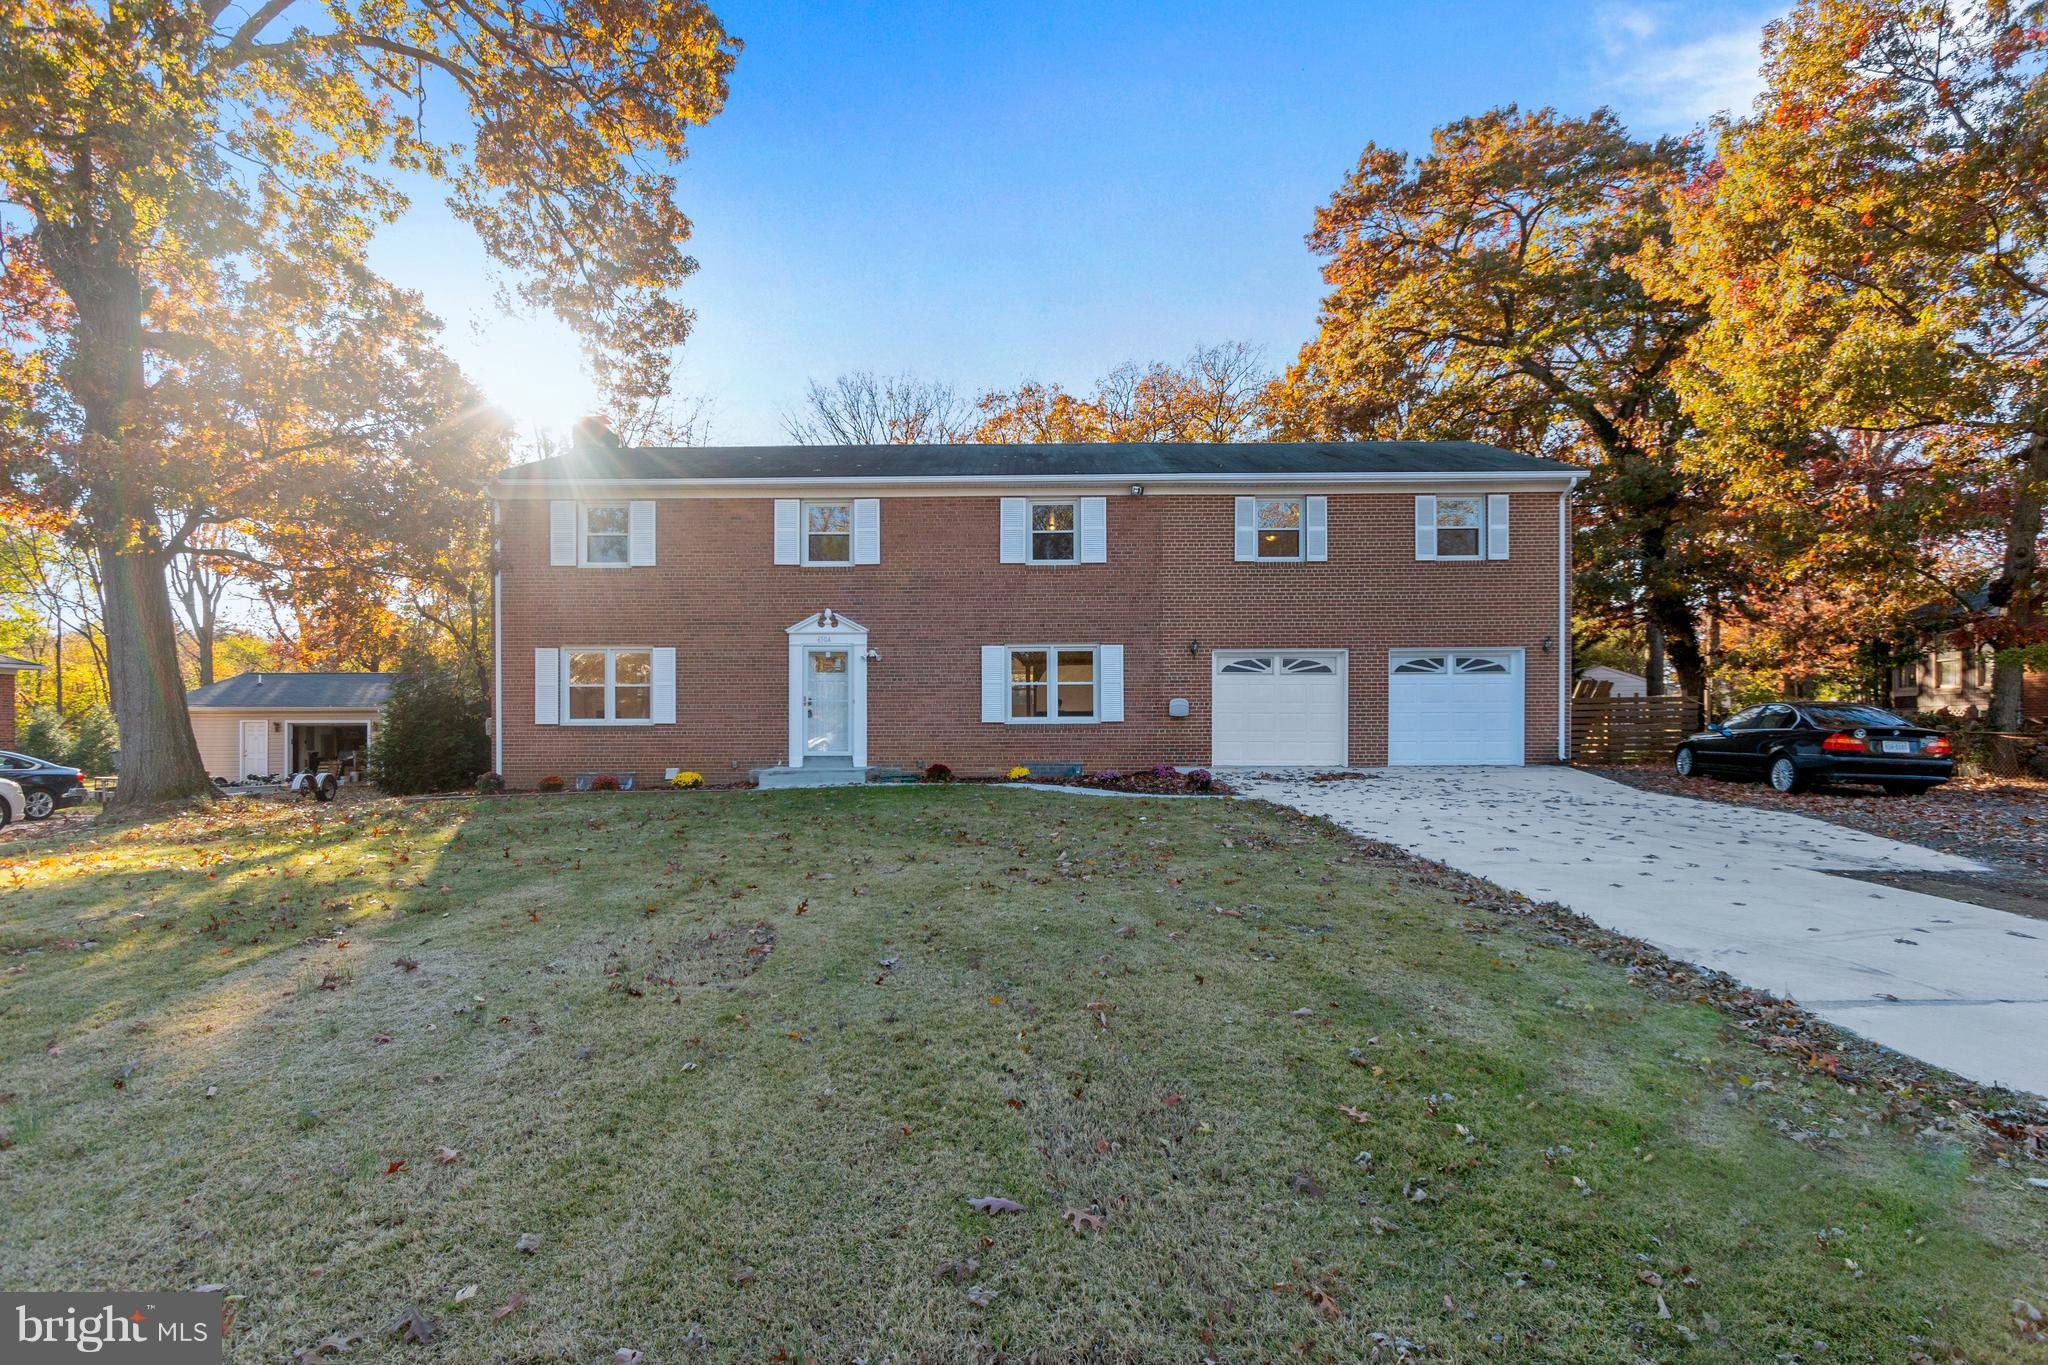 Large 3 levels brick home offers 5 BR,3.5 BA in cul de sac, hardwood floor in main and upper levels, finished basement with 4 extra room (NTC), 2 car garages, close to I-95 & I-395, neighborhood path to metro and next to the new Springfield town center, large fully-fenced back yard, plenty of parking spaces.  Open house Sat 10 Nov from 12 - 3 pm